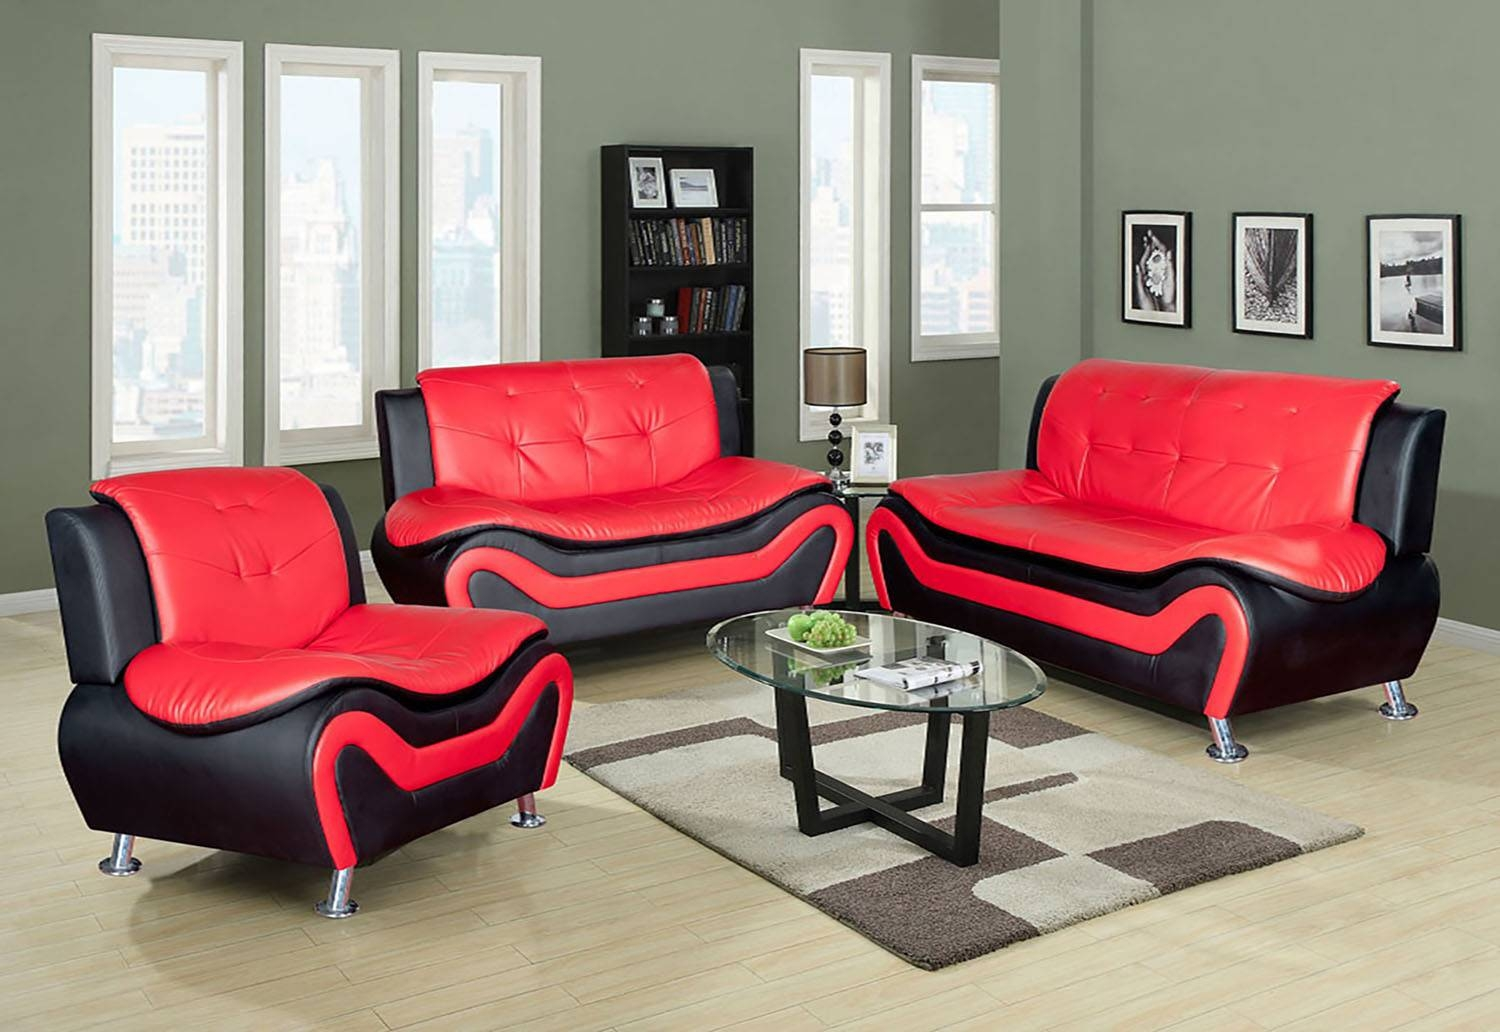 Red & Black Faux Leather 3Pc Set Sofa, Loveseat, Chair with Sofa Loveseat and Chair Set (Image 25 of 30)